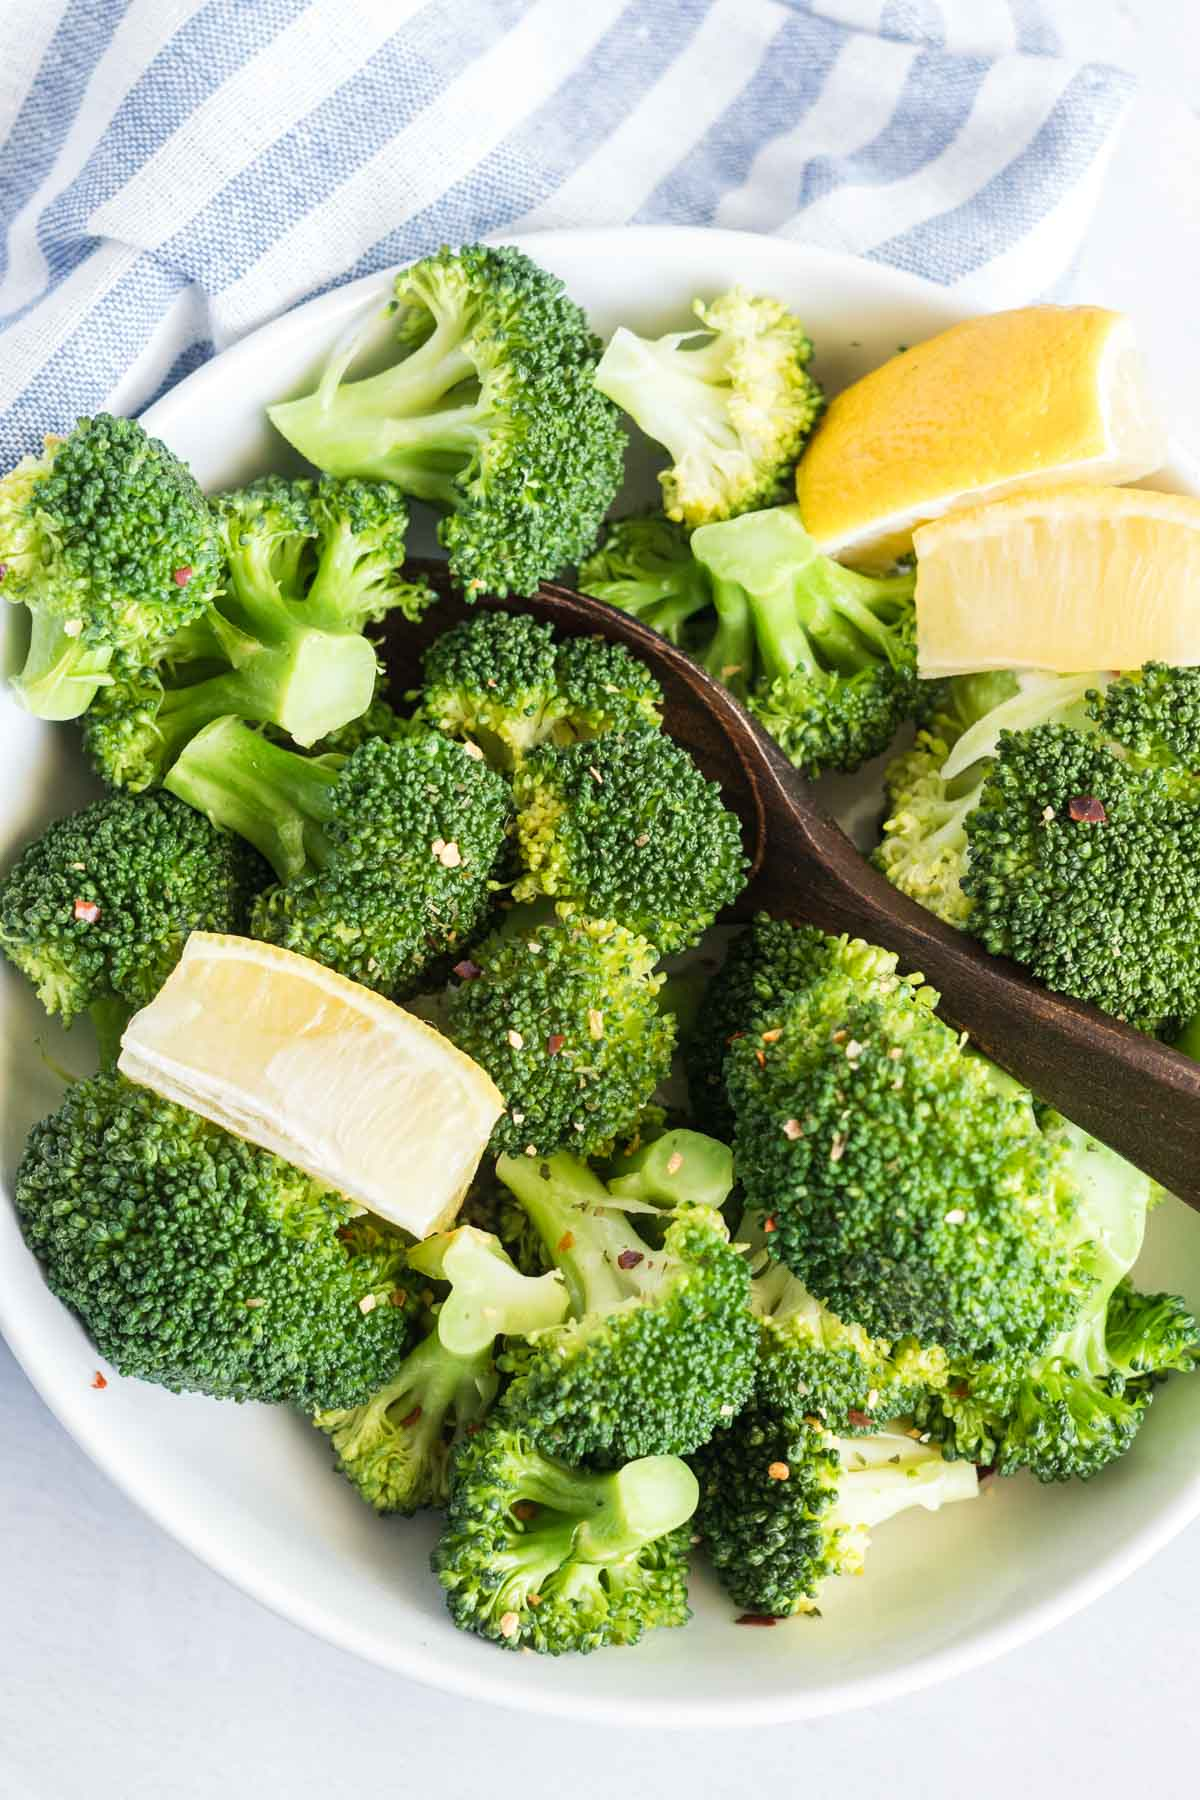 Cooked broccoli in a serving bowl with a wooden spoon.